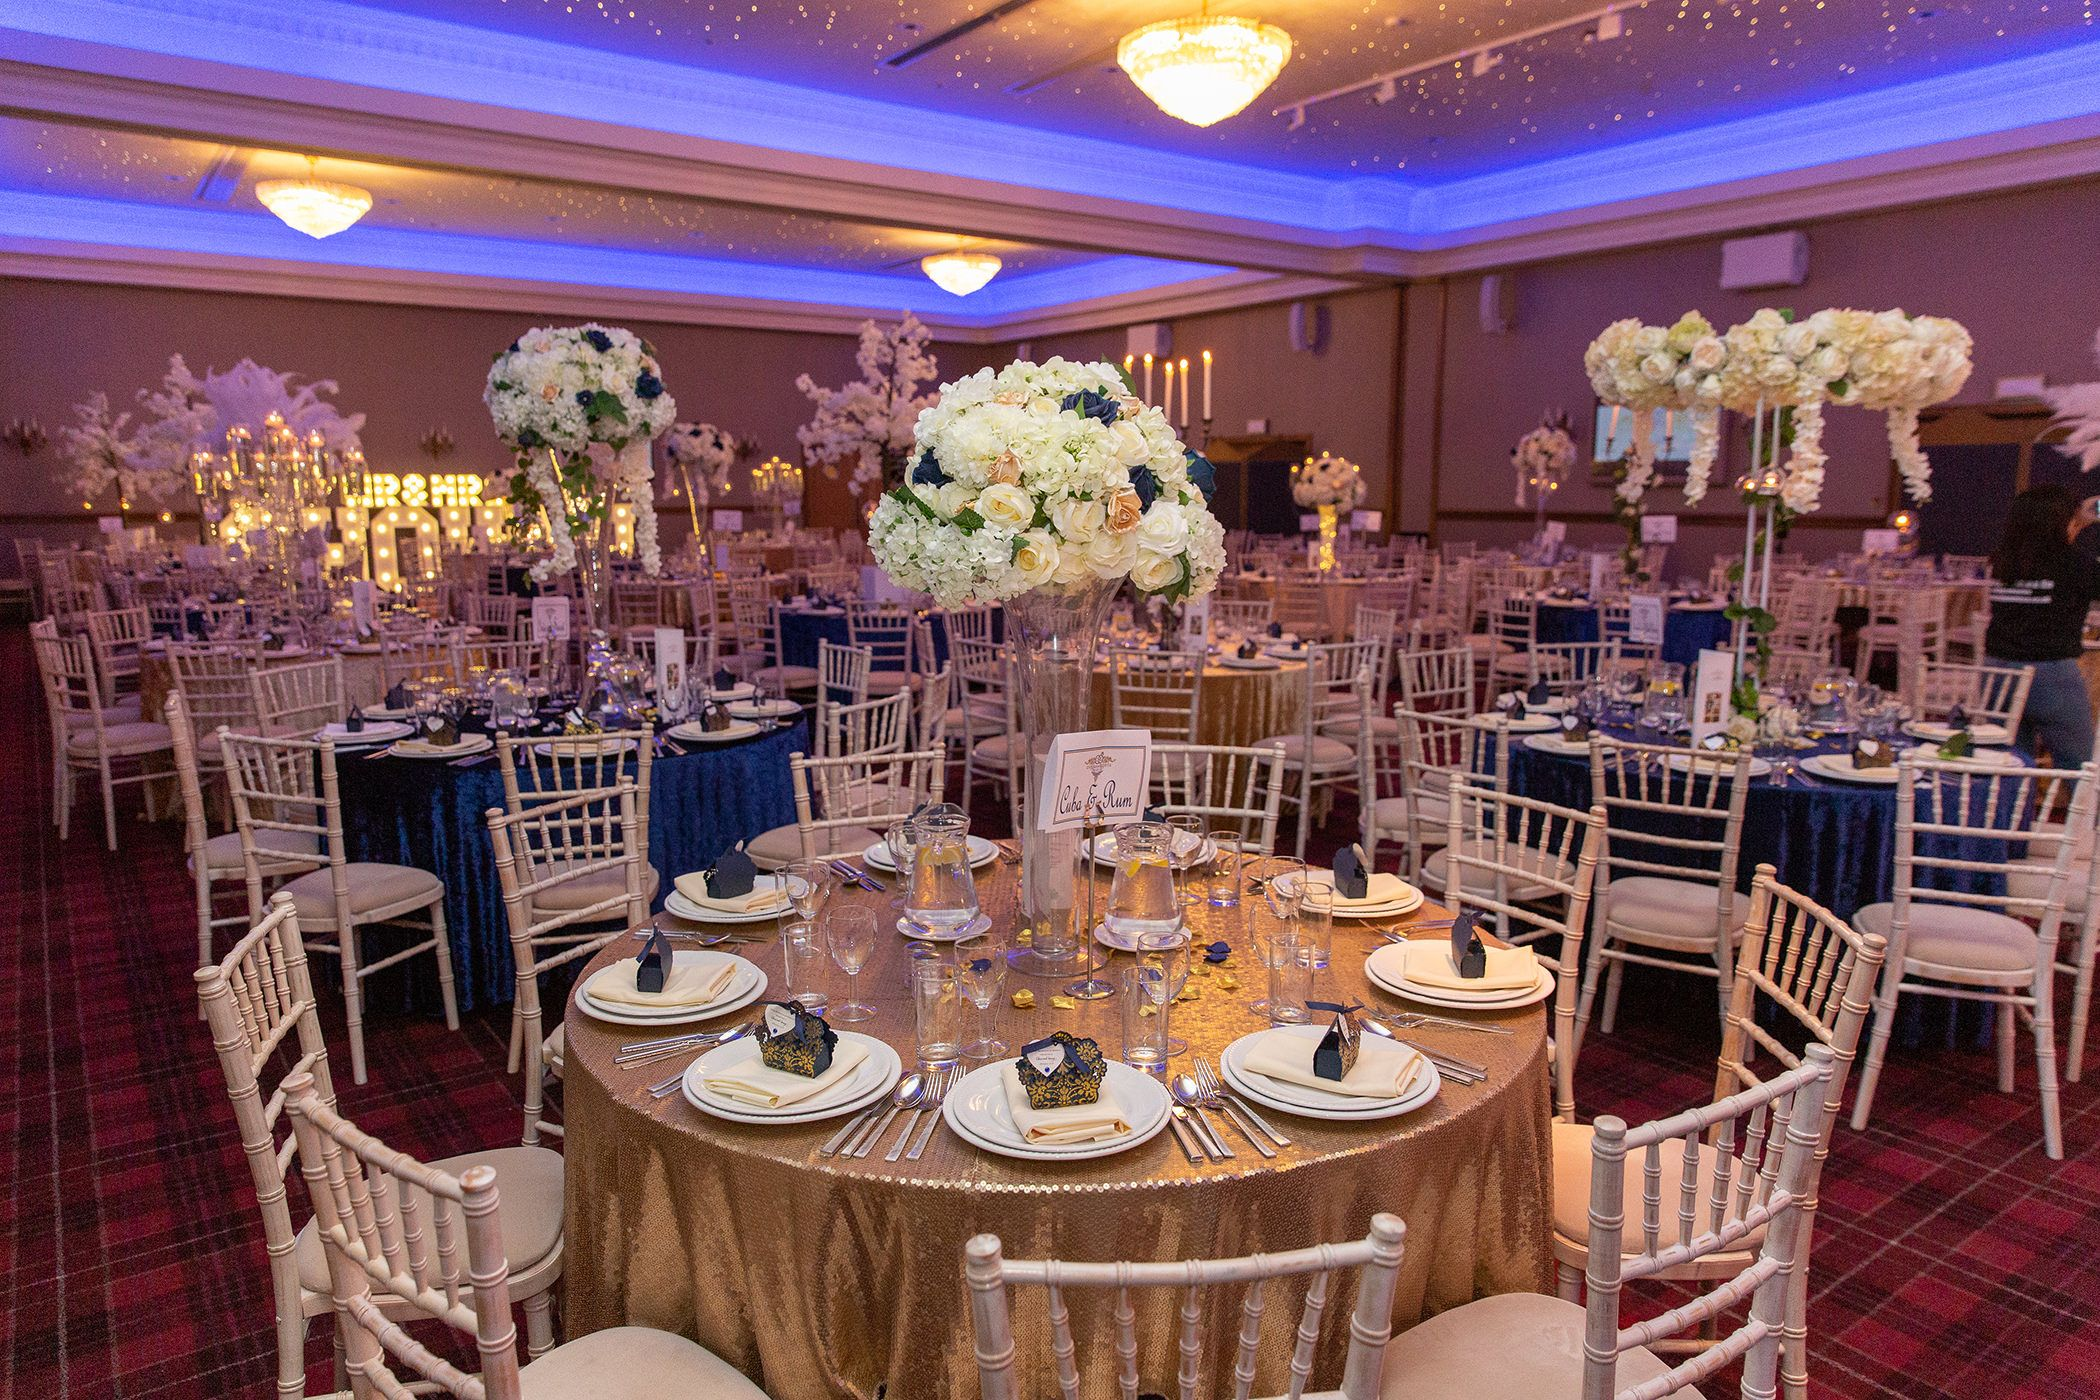 The wedding reception room